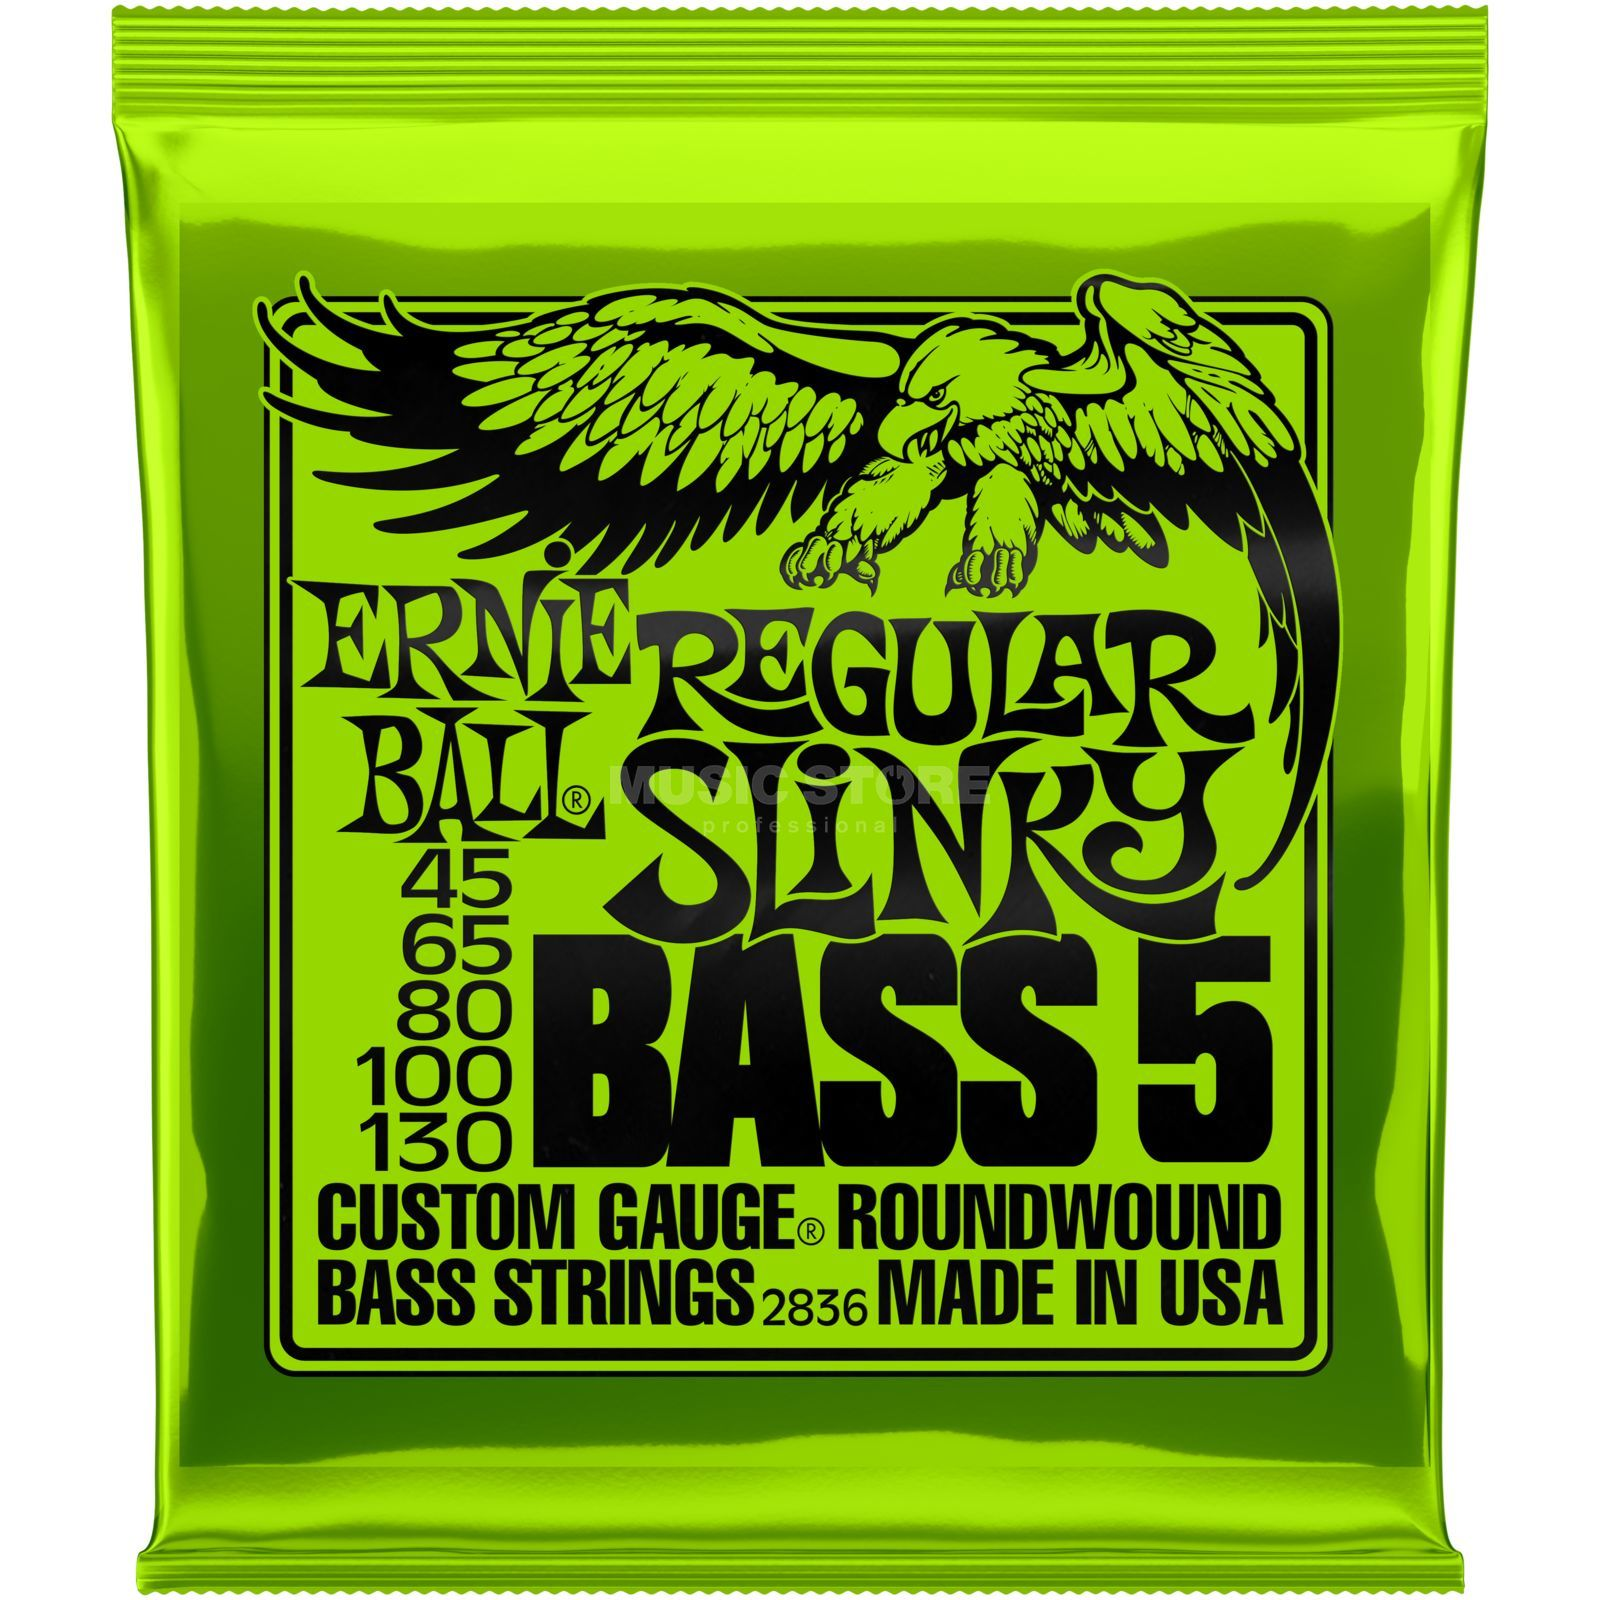 Ernie Ball Bass Strings 45-130 Regular Roundwound Long Scale Immagine prodotto